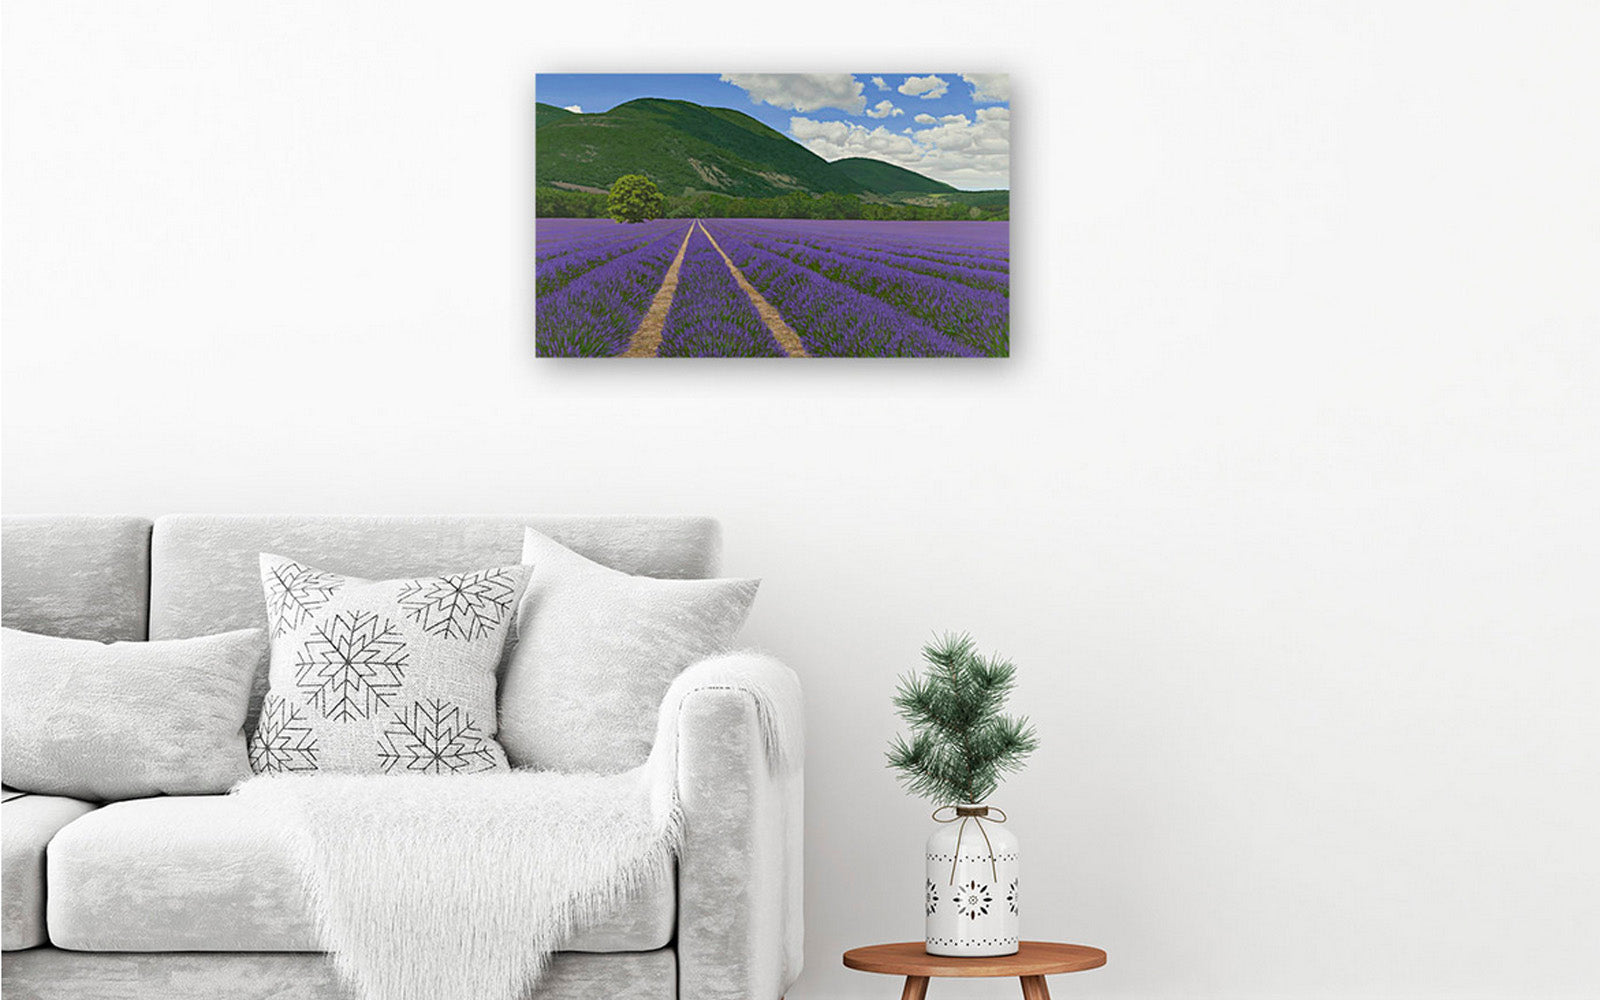 Hotel art picture of a beautiful canvas painting of lavender fields hanging on a hotel bedroom wall above an armchair. The hotel art painting is like a window.